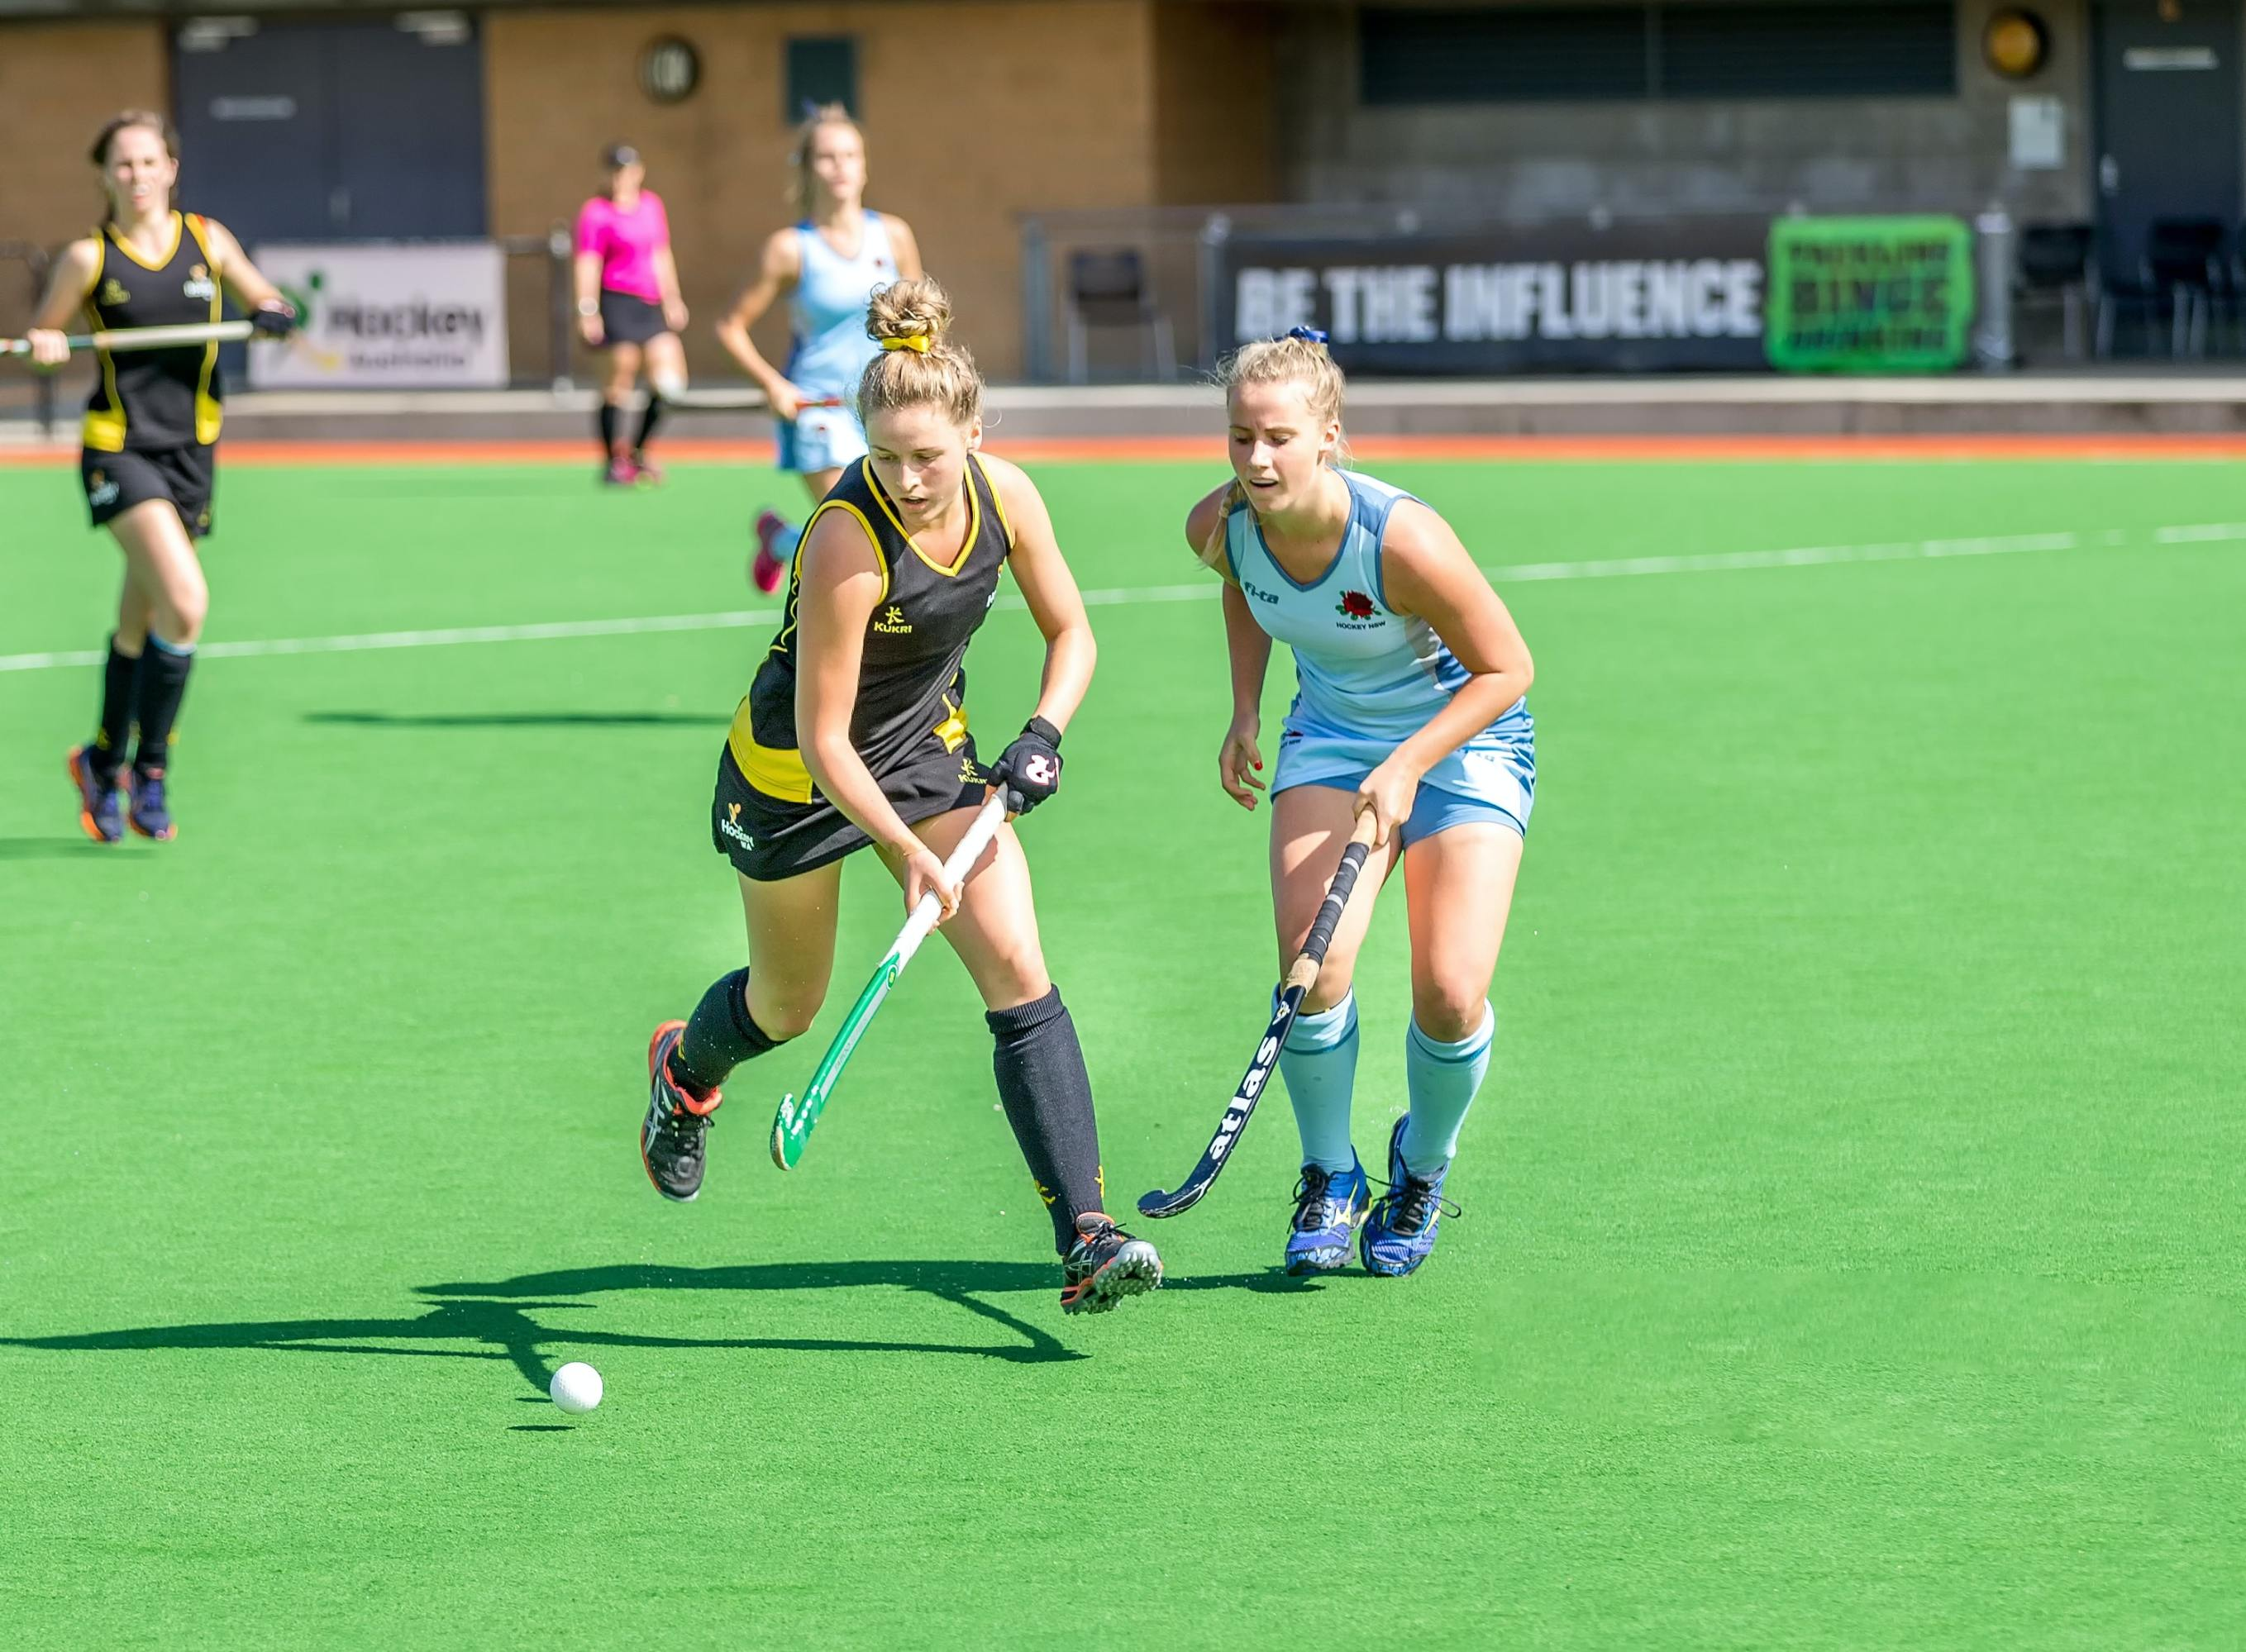 Women playing field hockey